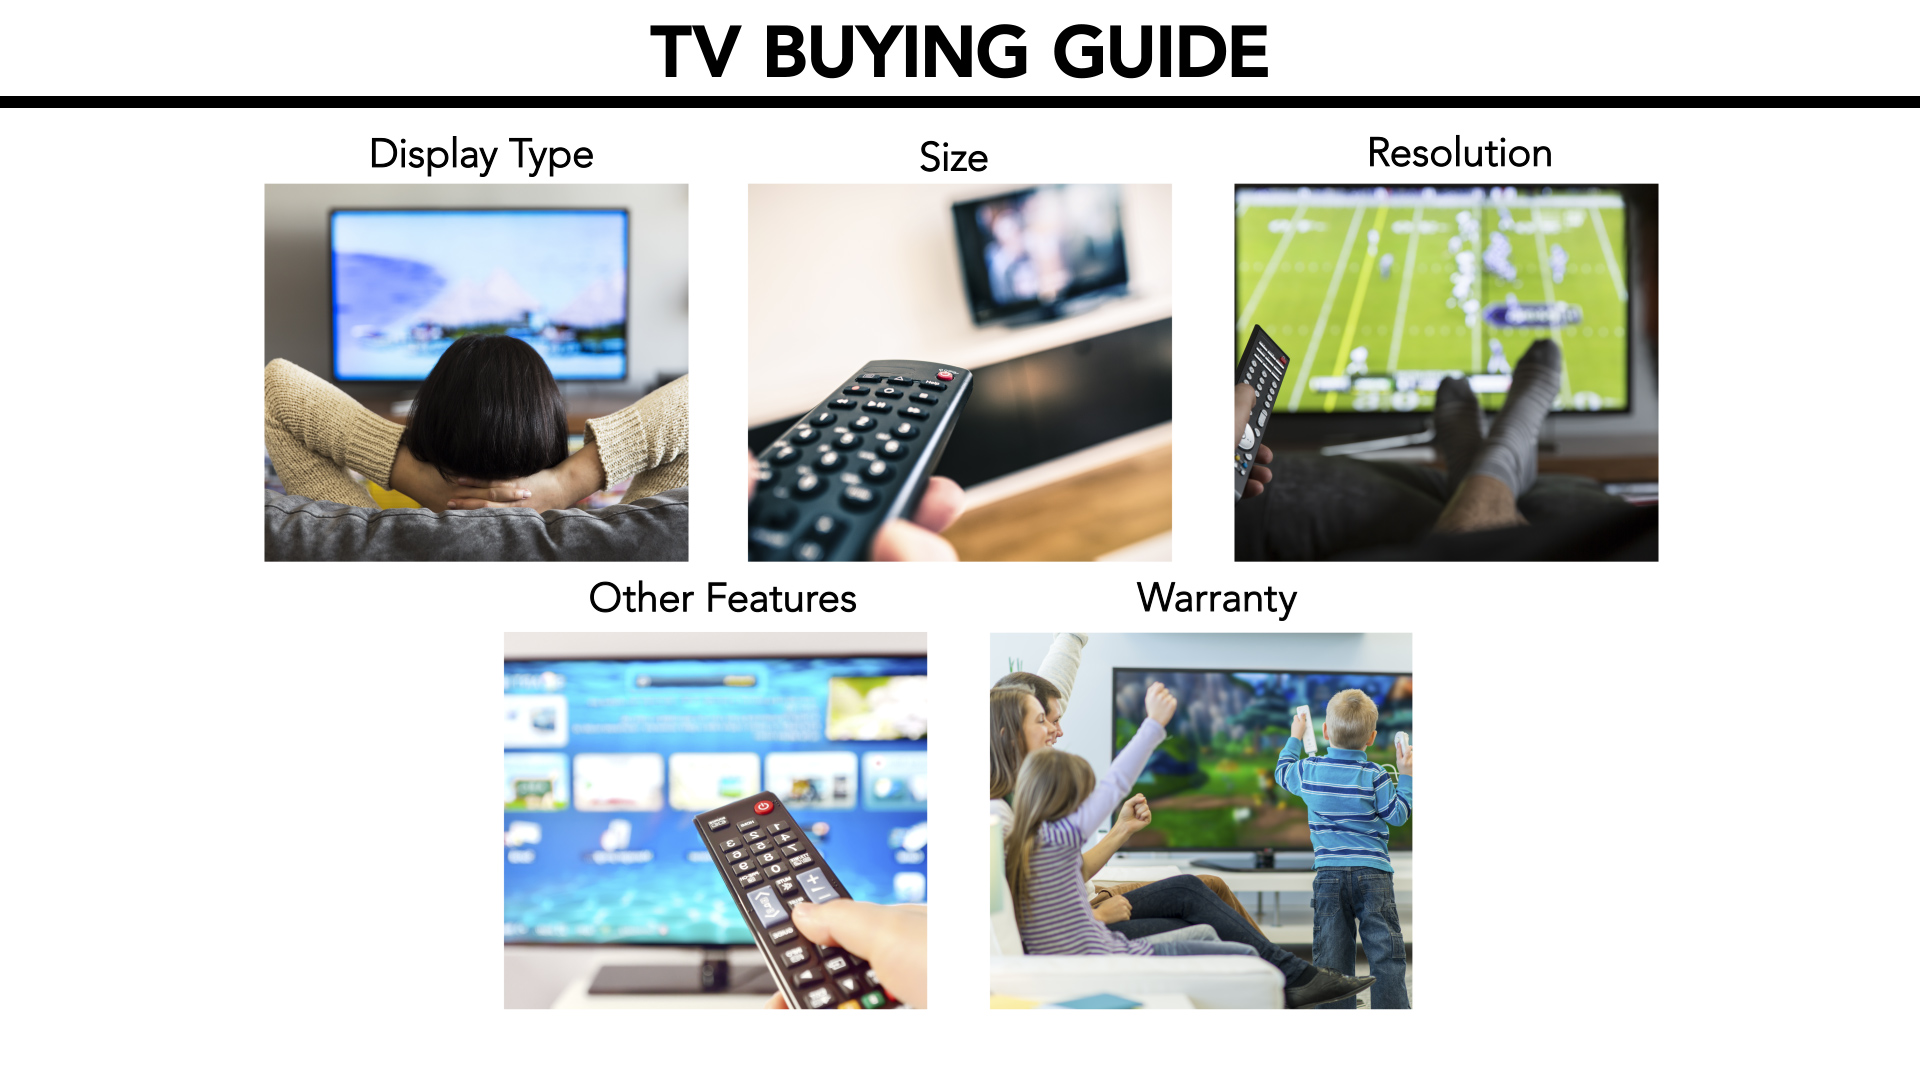 Best Rated LED TVs – The latest technology in LCD HDTVs is referred to as LED. This actually is an LCD television with an LED backlight instead of the traditional fluorescent backlights that were used on older TVs.